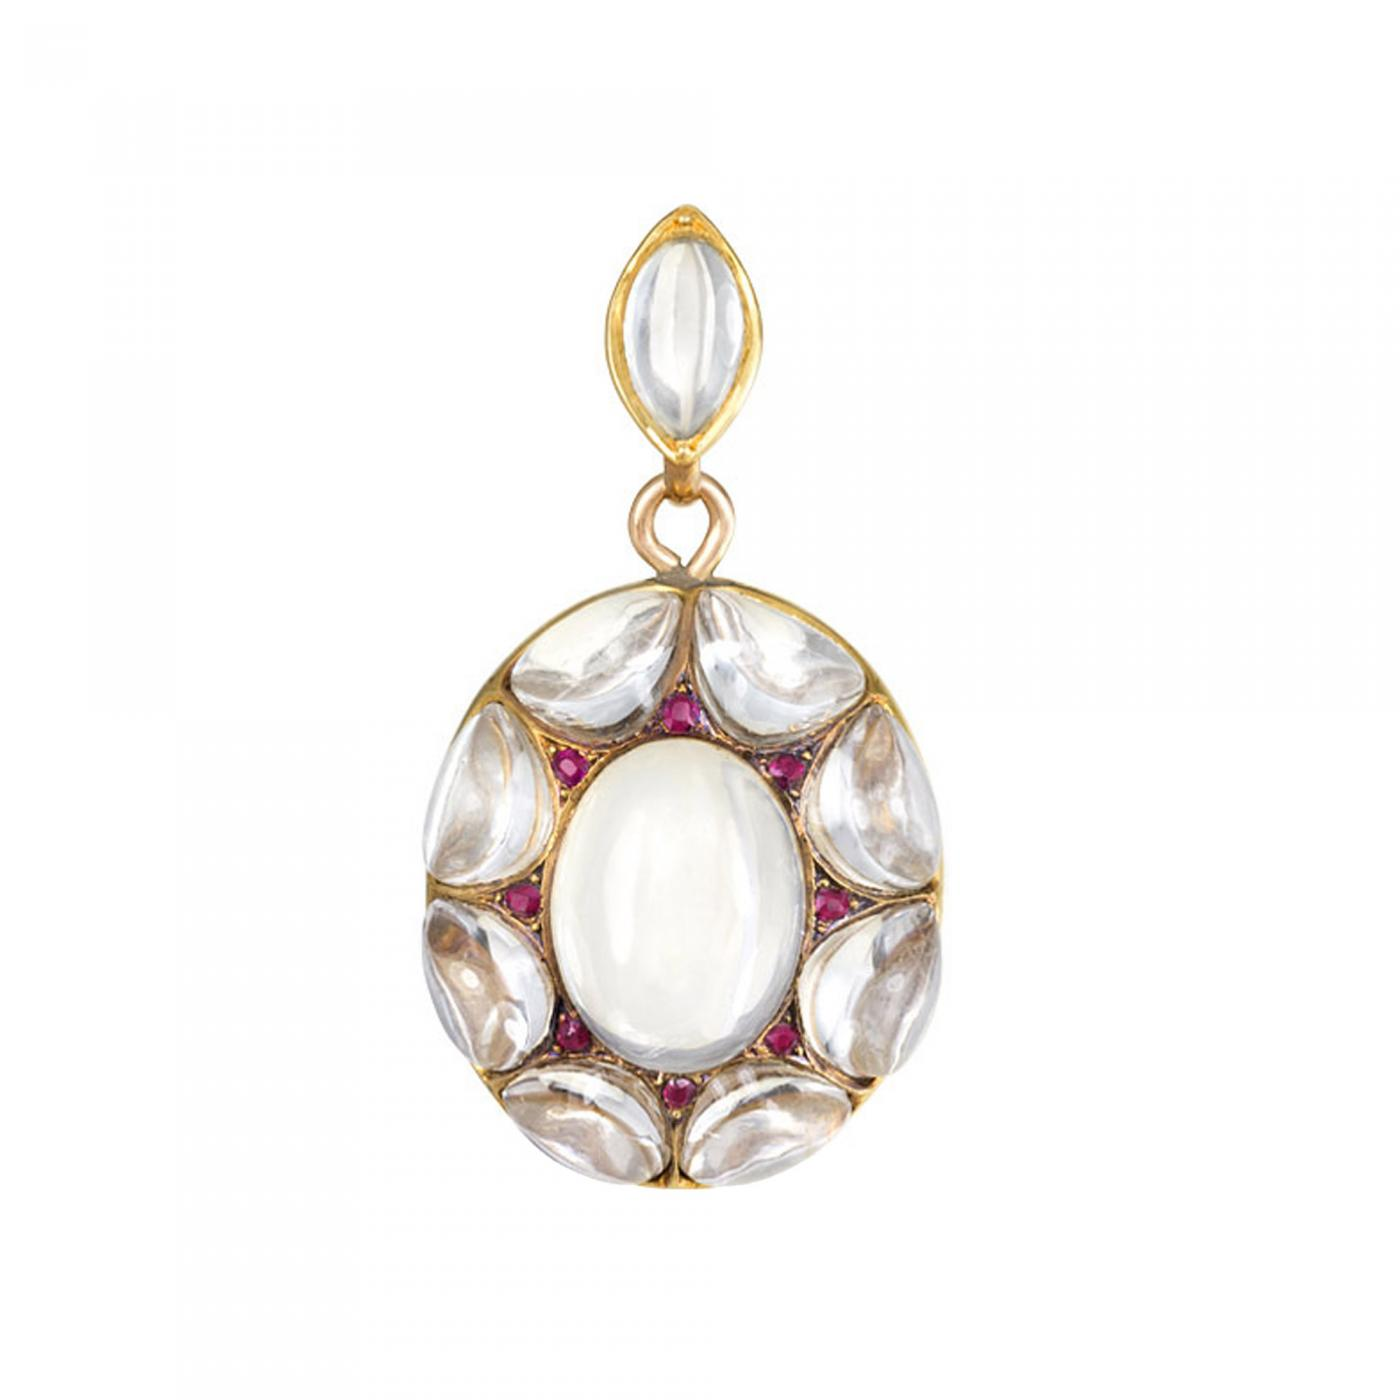 Antique carved rock crystal and ruby locket listings jewelry necklaces pendants drop pendant antique carved rock crystal aloadofball Images